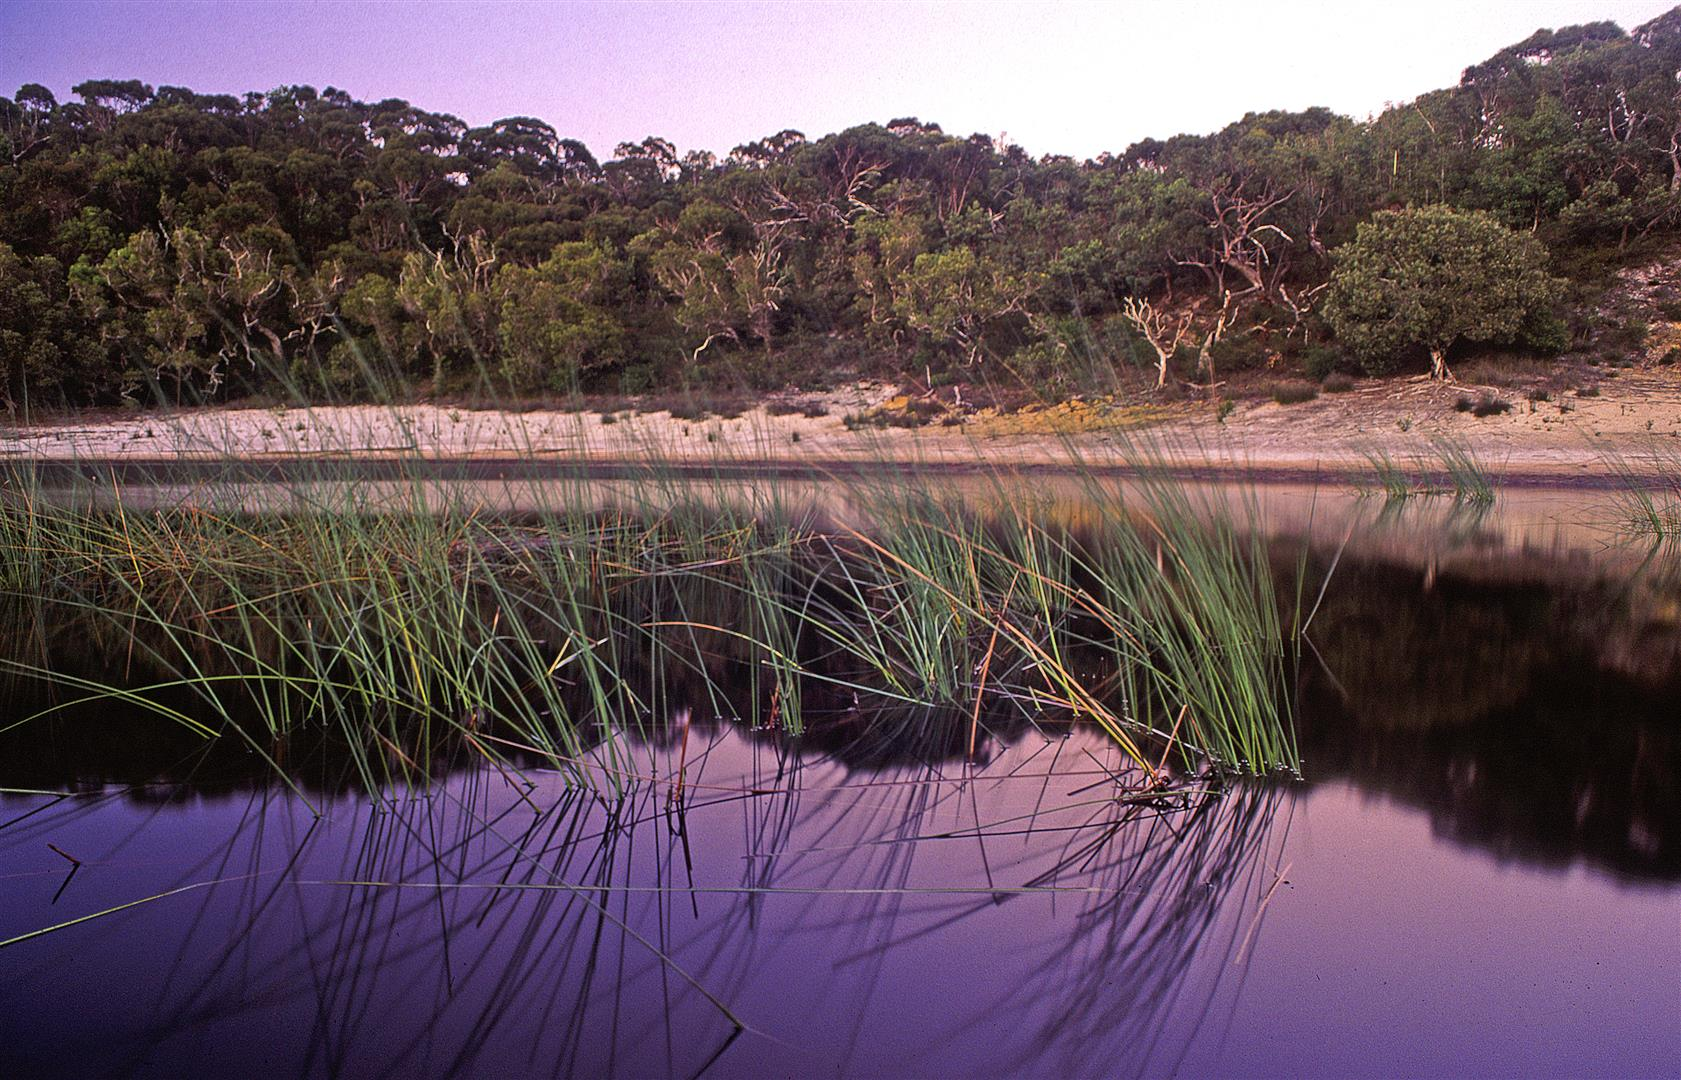 Grey sedges in the acidic waters of a freshwater lake on Moreton Island.